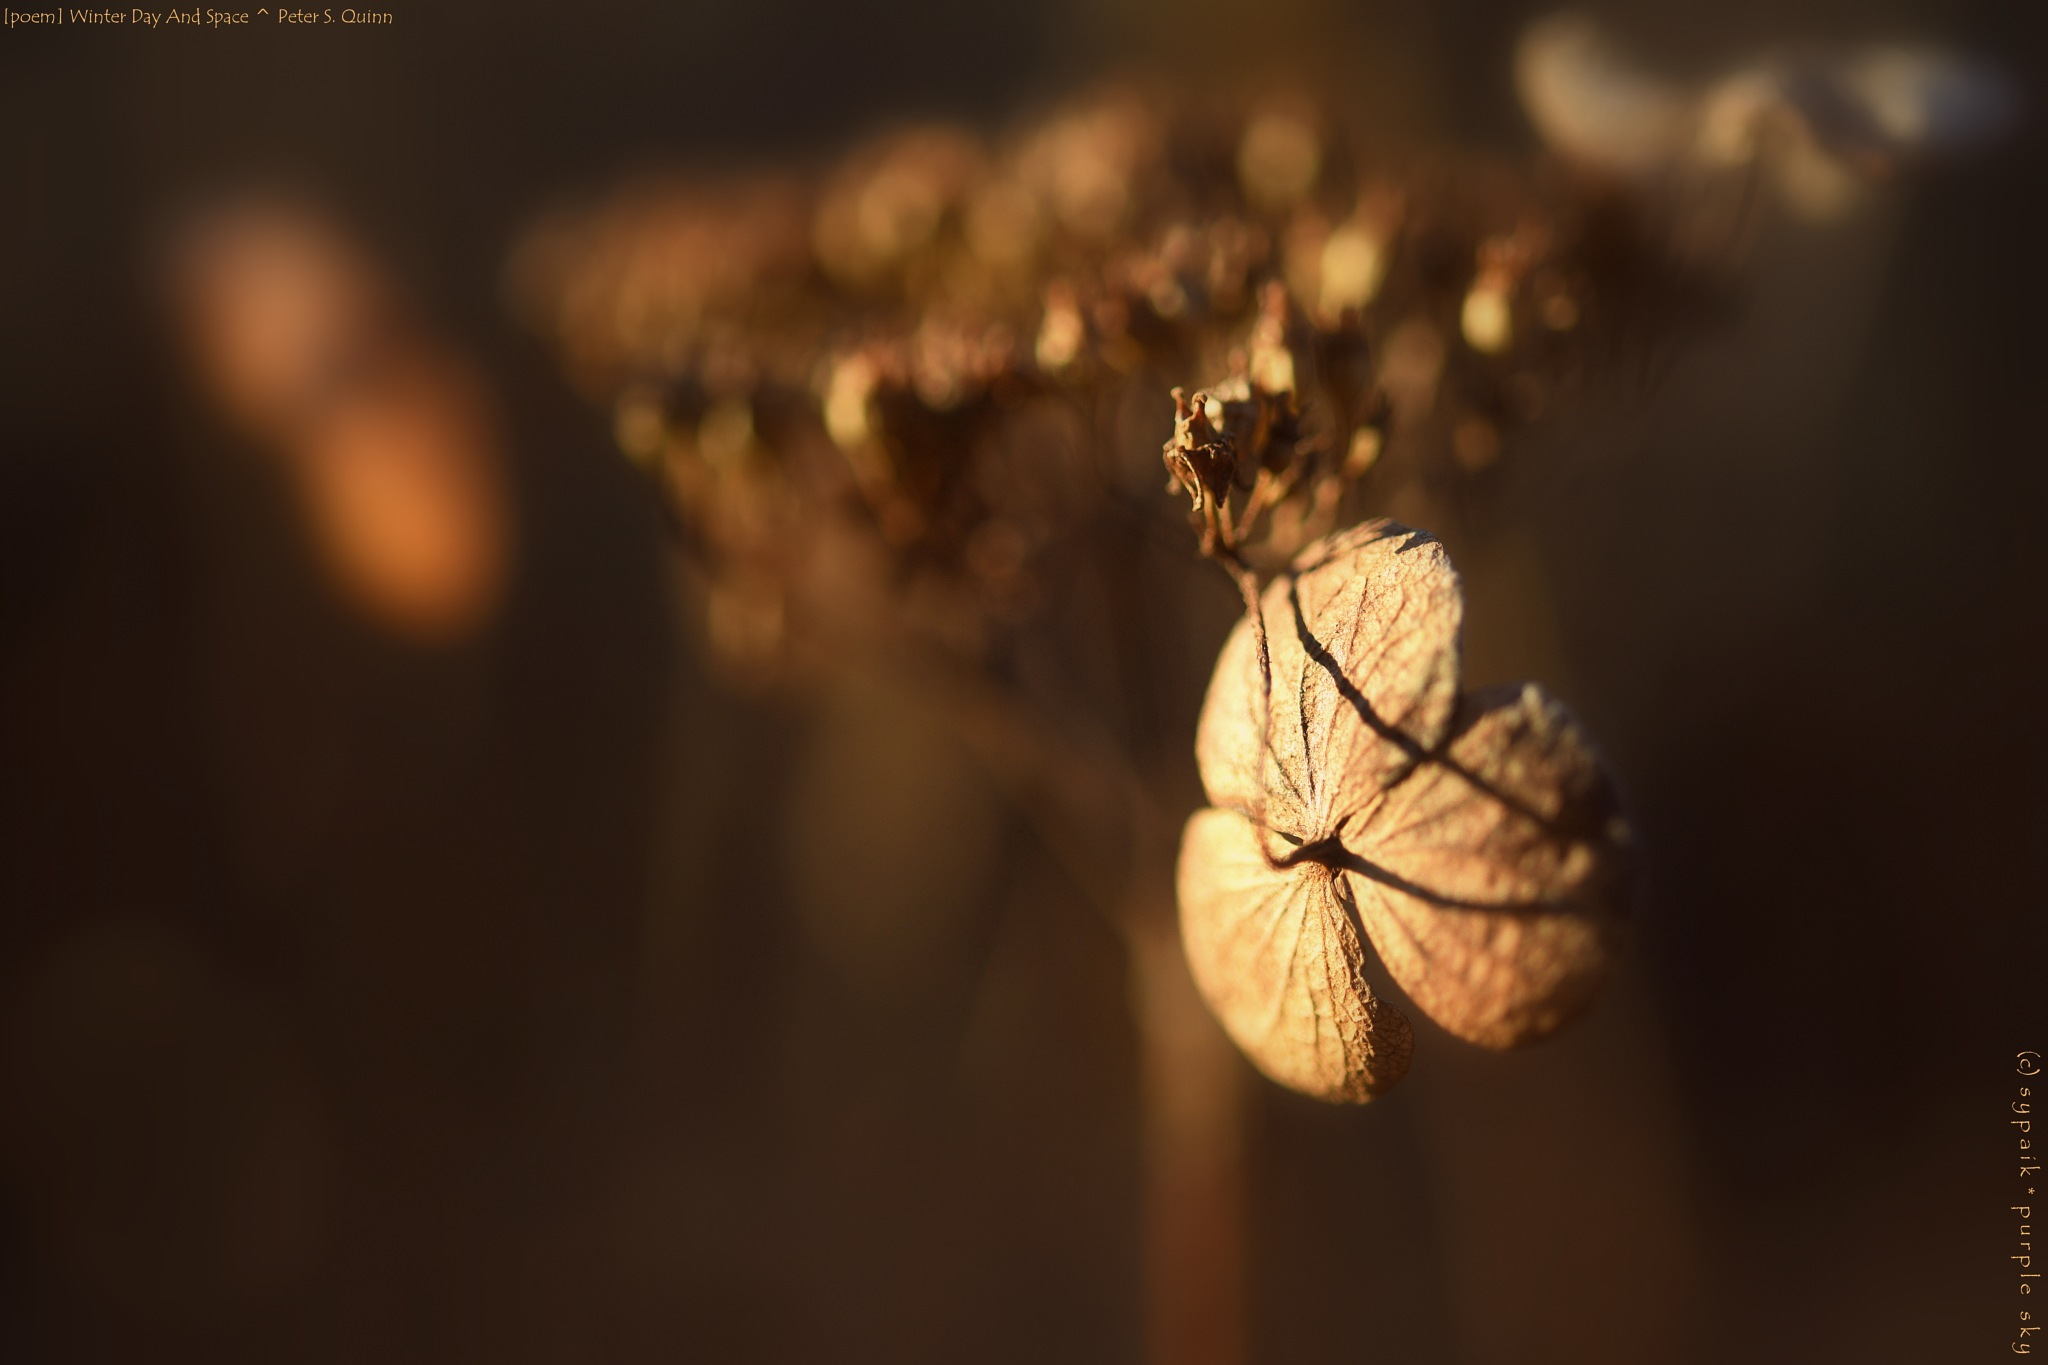 Winter Day And Space From Dried Flowers by sypaik